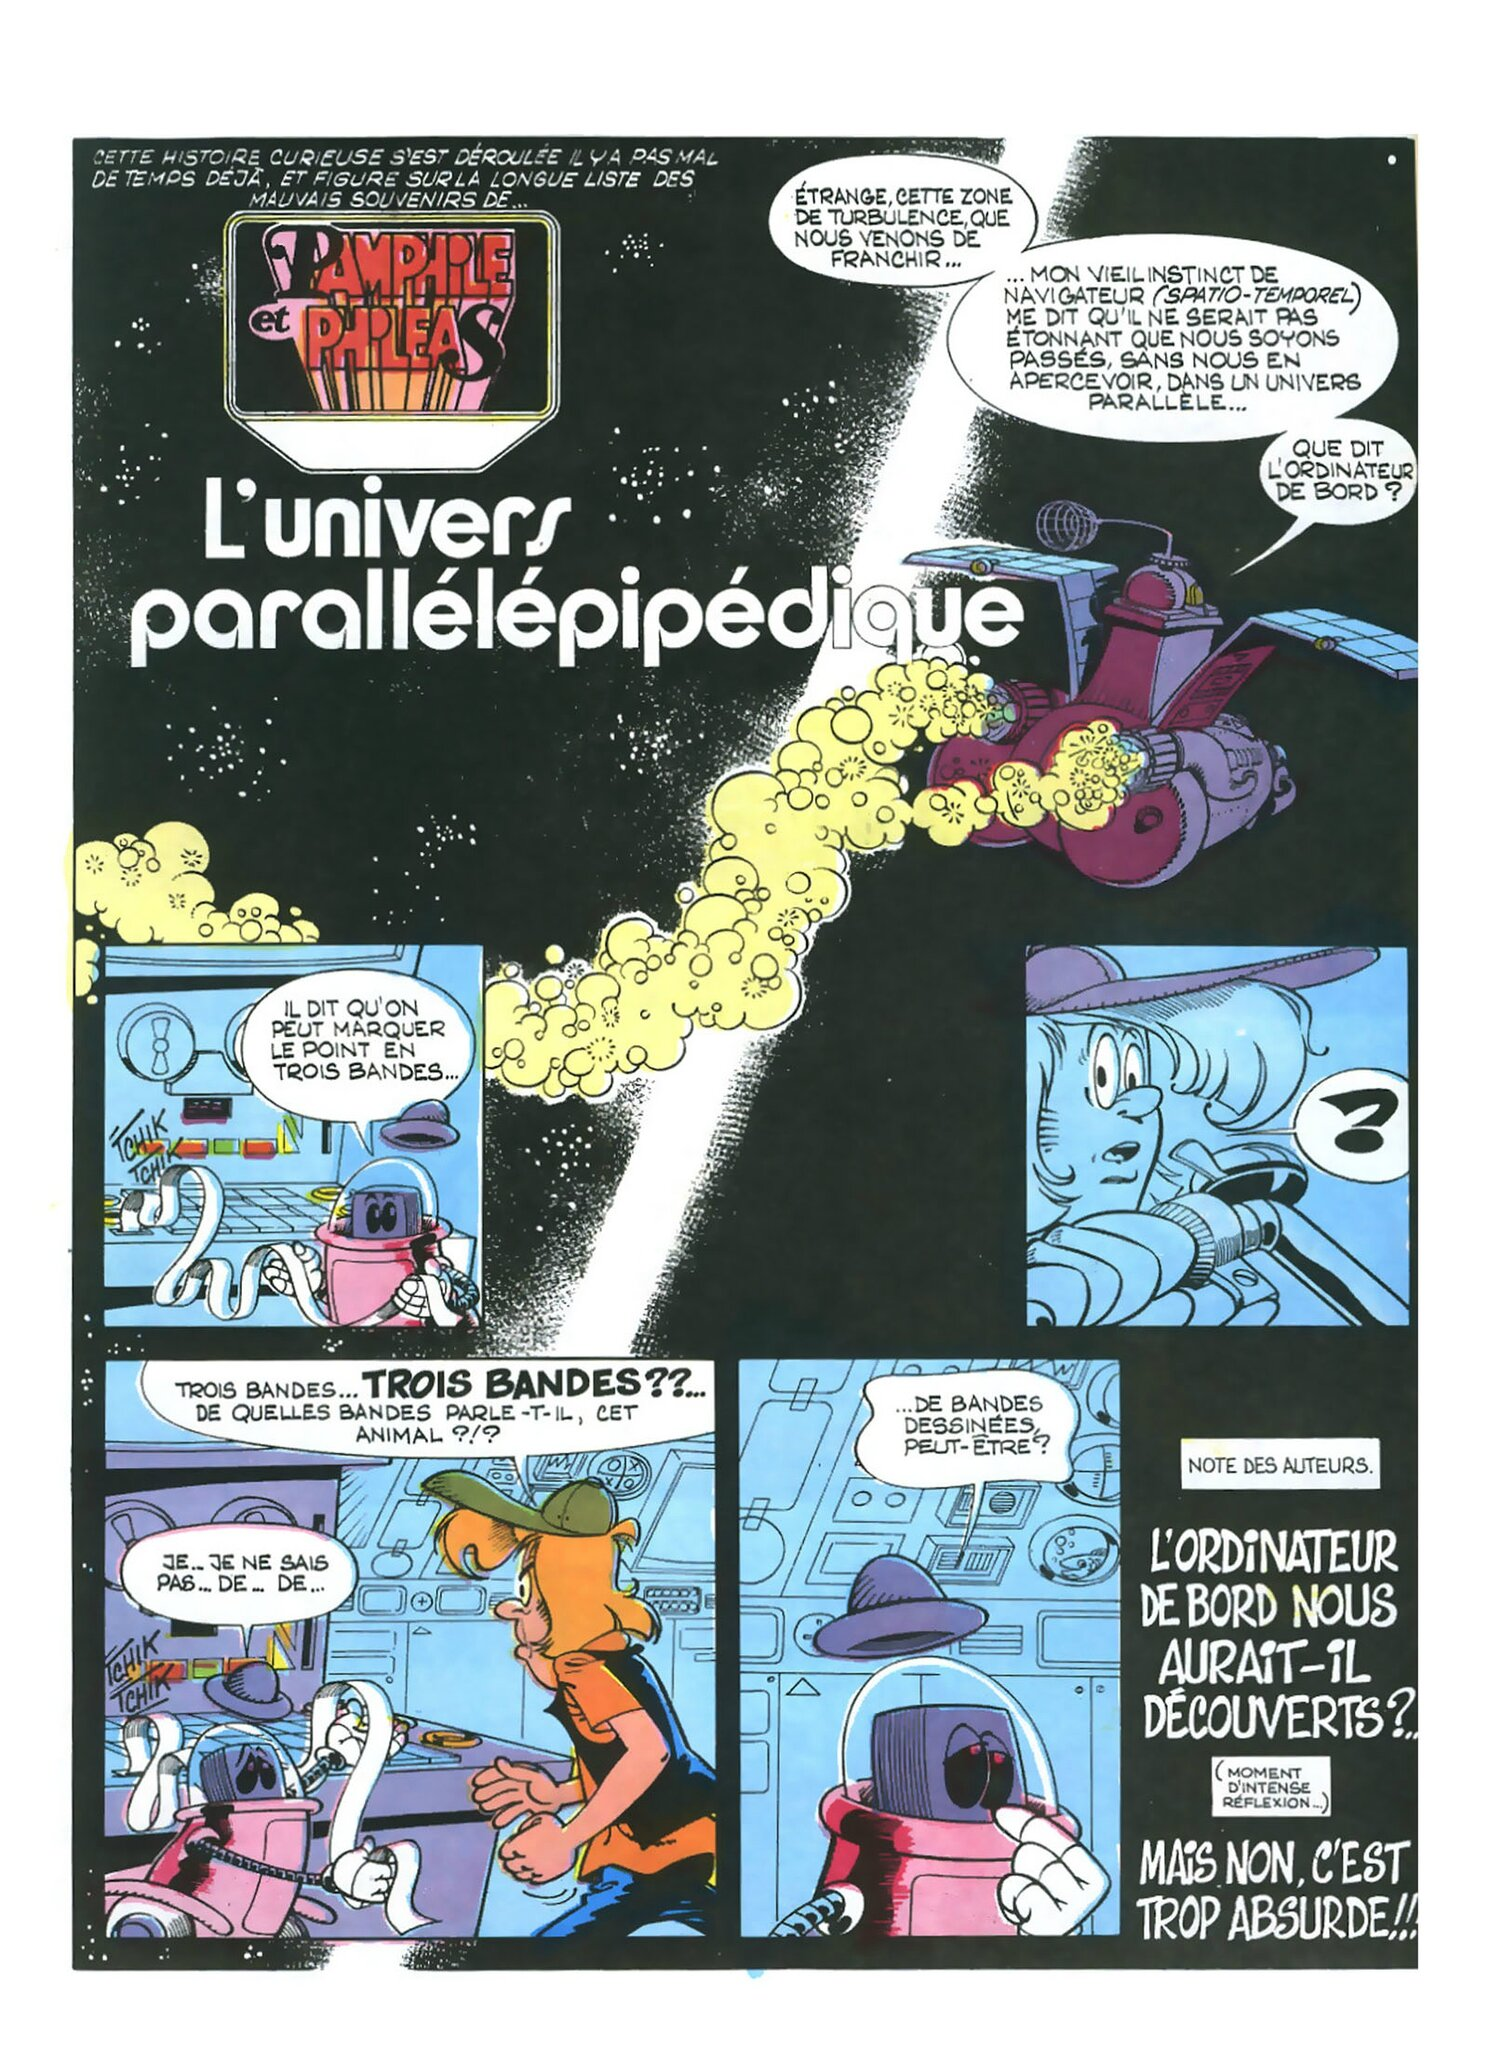 32 - L'univers parallélépipédique - copie